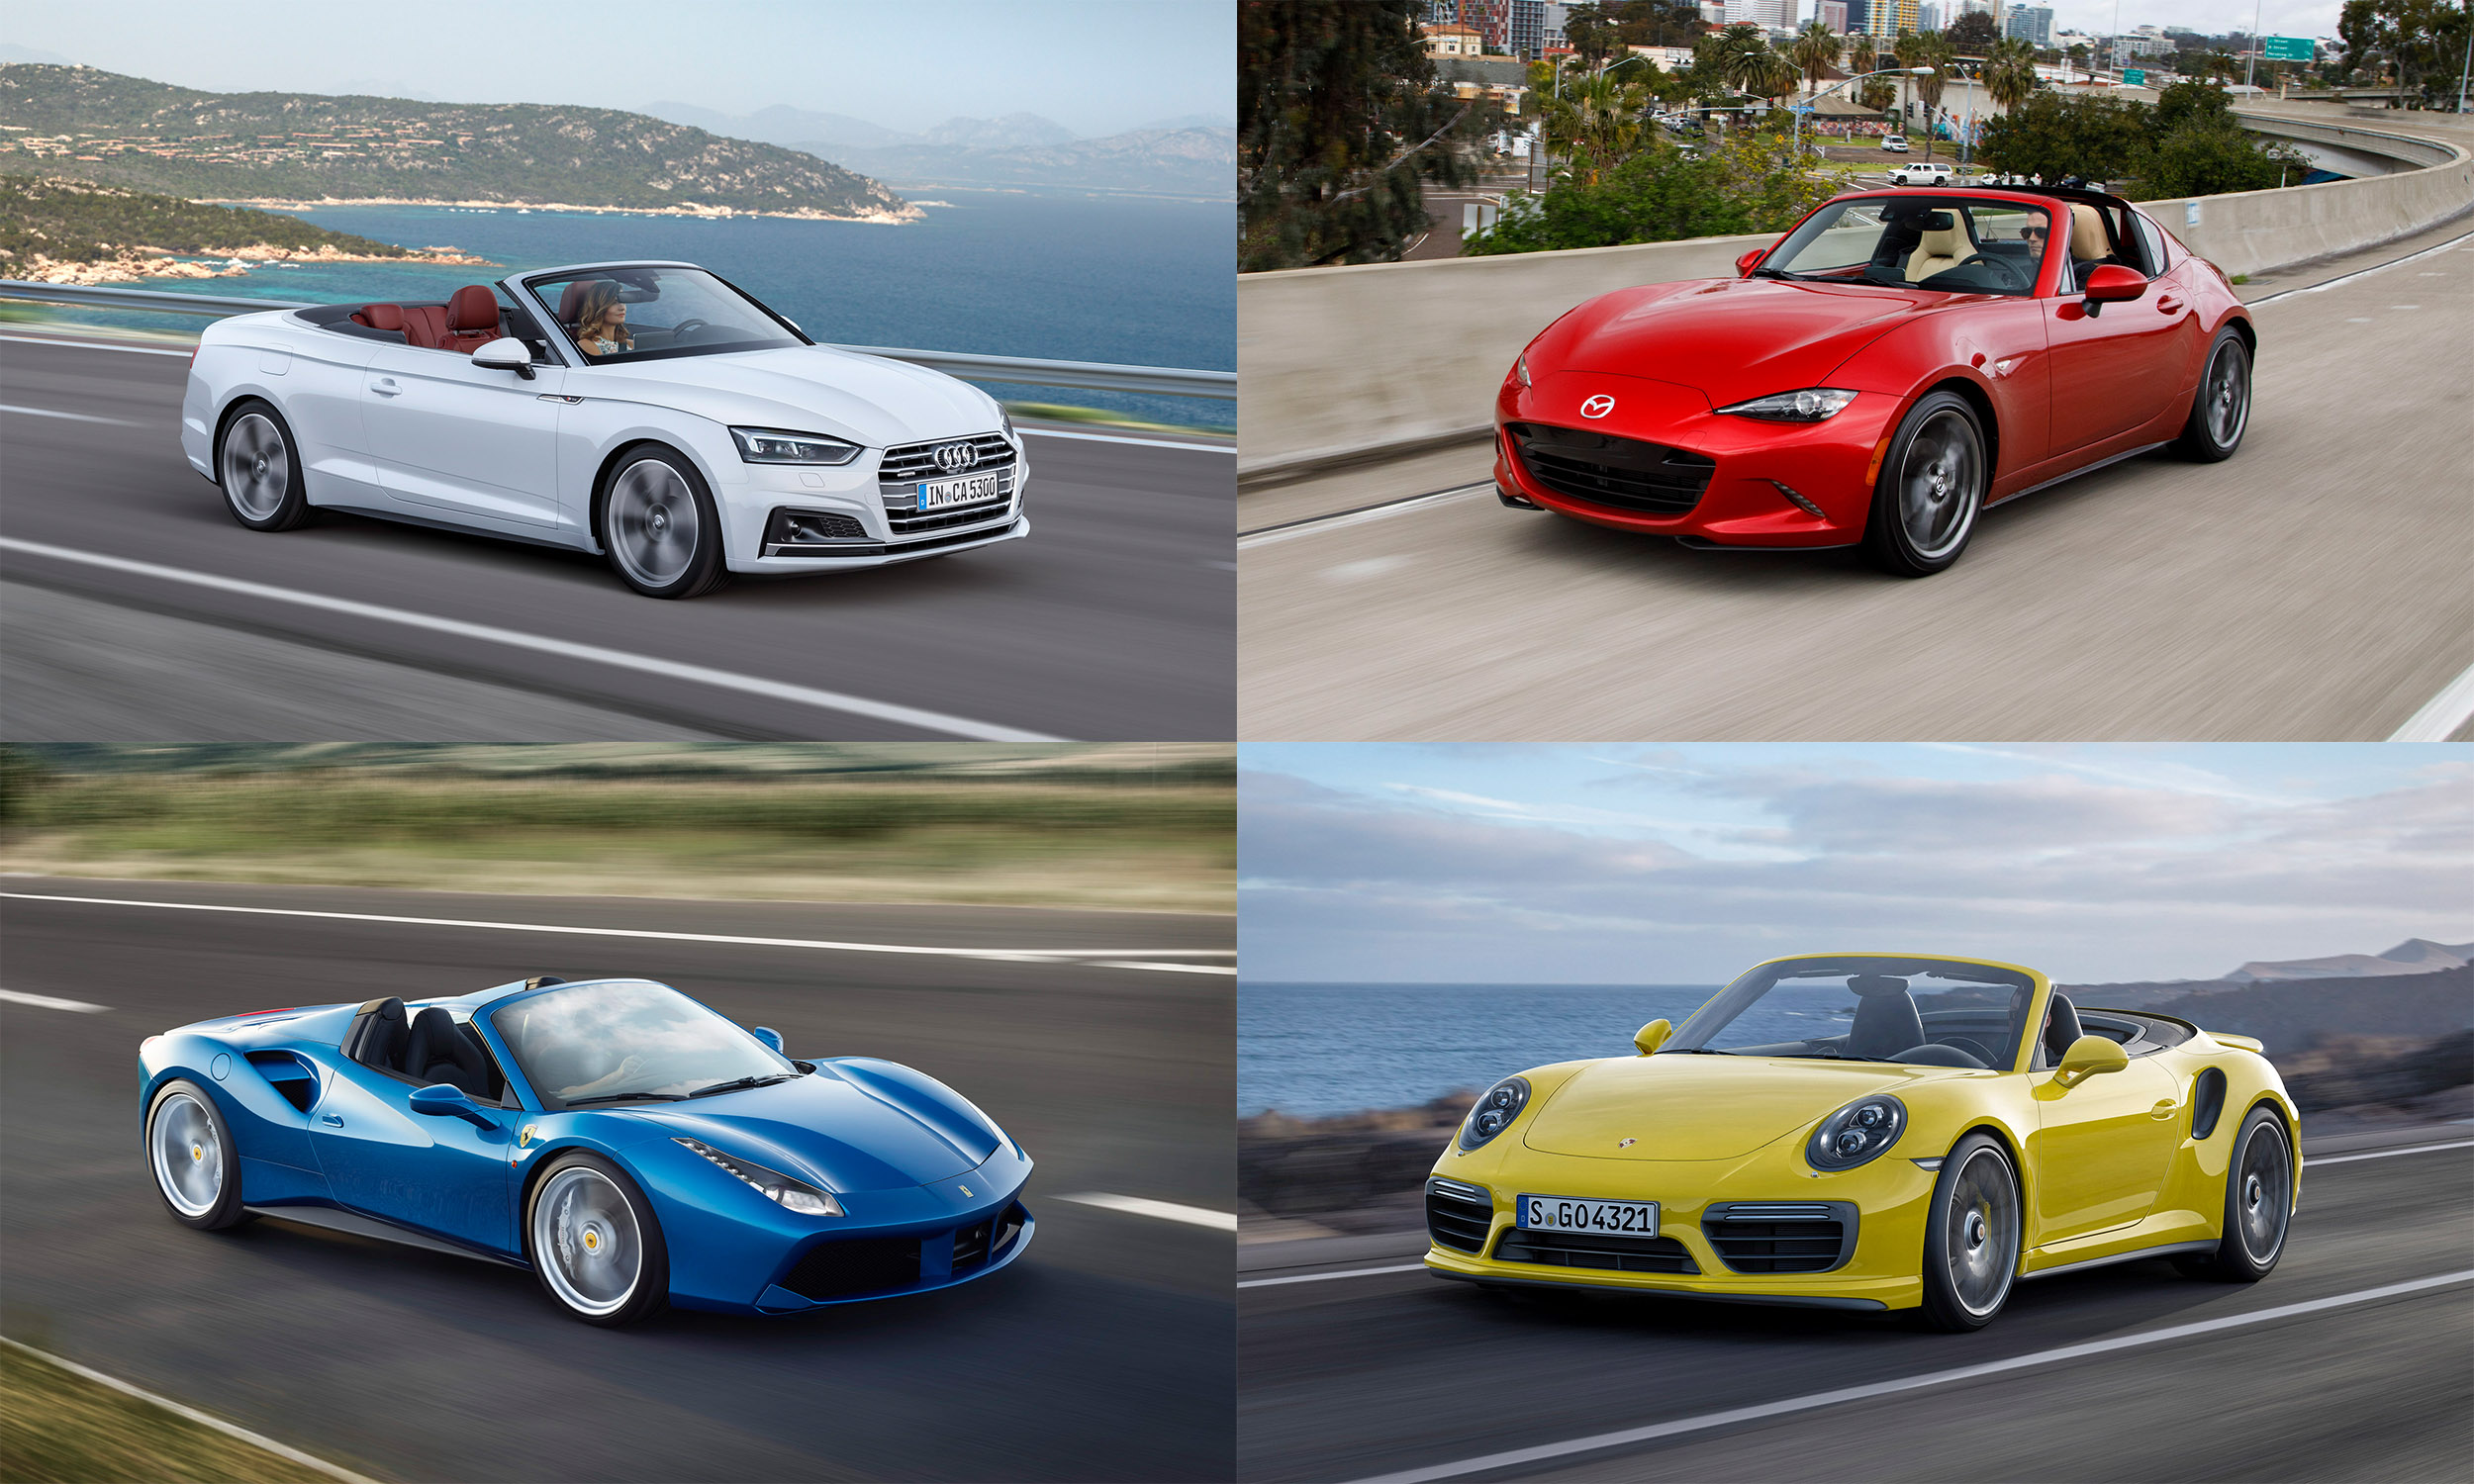 © Audi of America; Mazda North American Operations; Porsche Cars North America; Ferrari S.p.A.